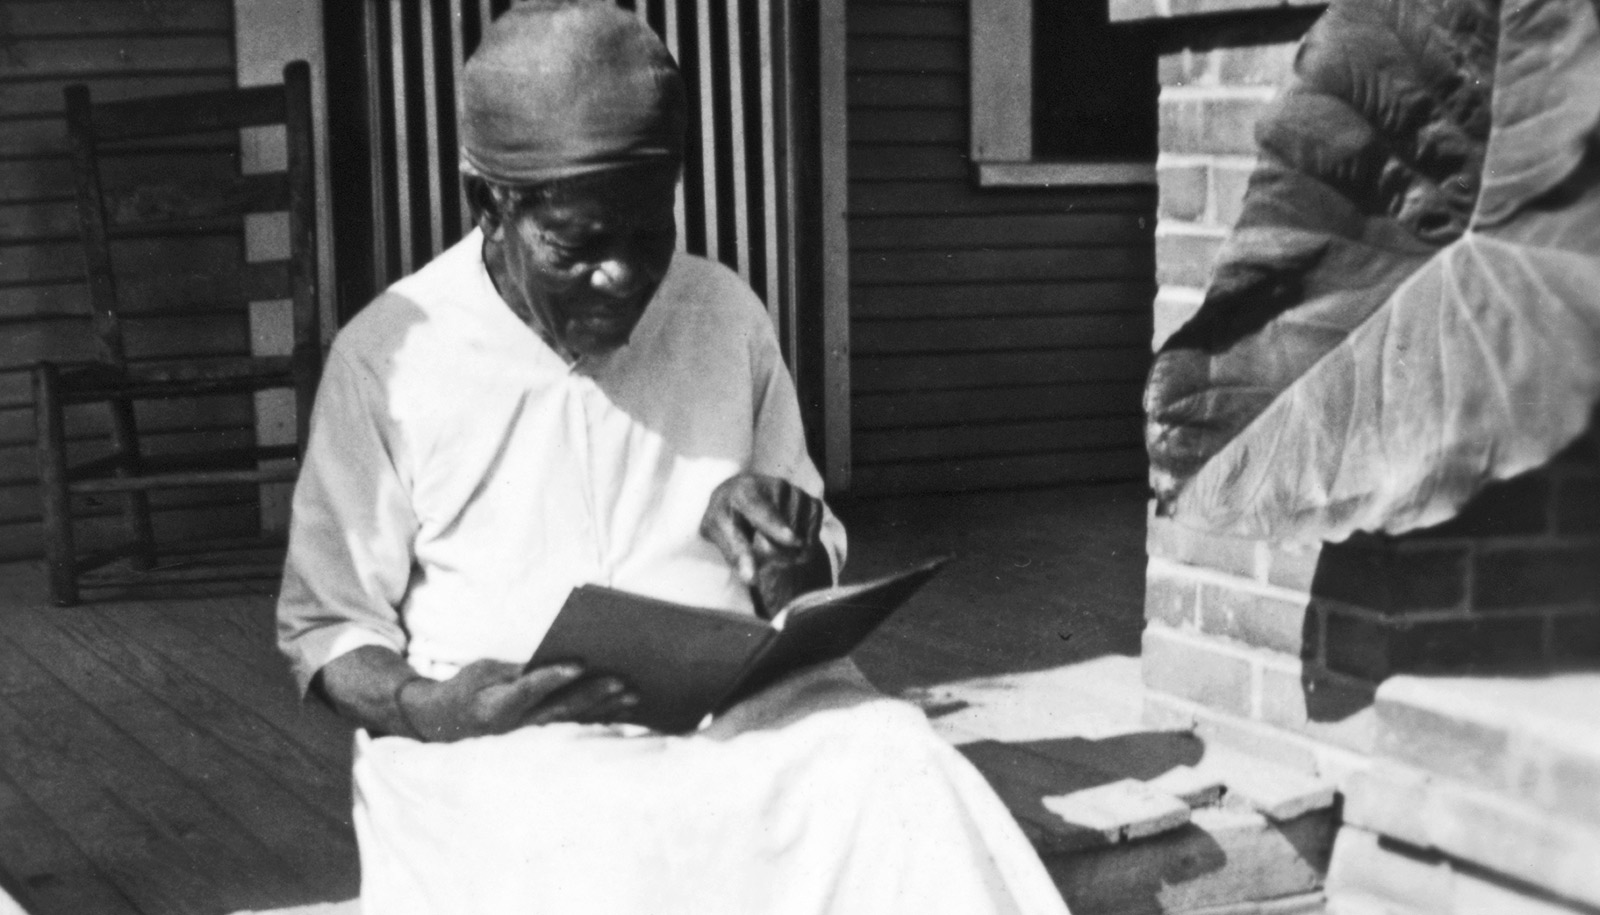 Mary Armstrong sits on a porch reading, while wearing a white dress and head wrap